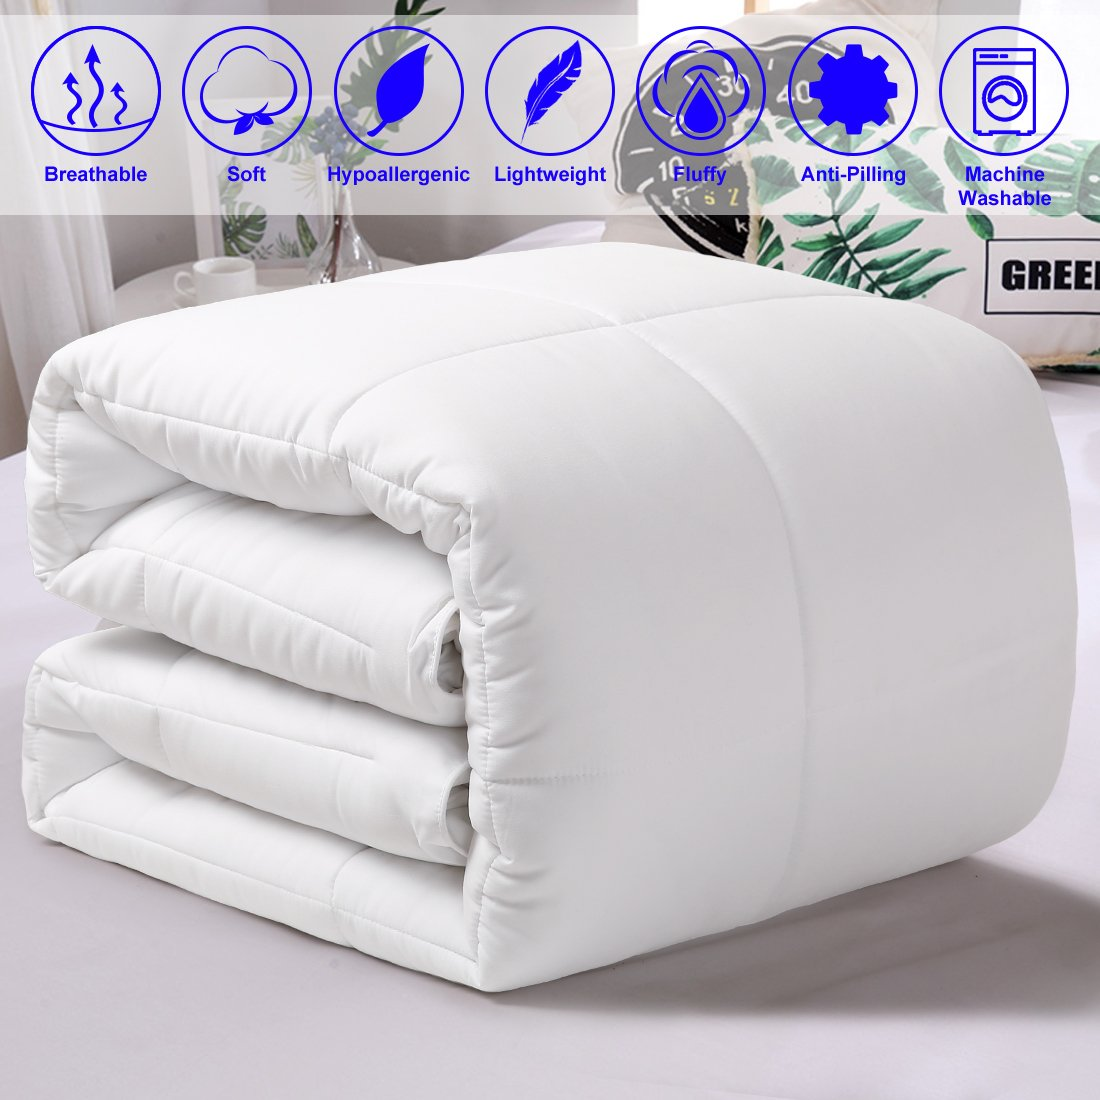 All Season Queen Goose Down Alternative Quilted Comforter with Corner Tabs - Hypoallergenic -Double Plush Fabric -Super Microfiber Fill -Machine Washable - Duvet Insert & Stand-Alone Comforter - White by Balichun (Image #2)